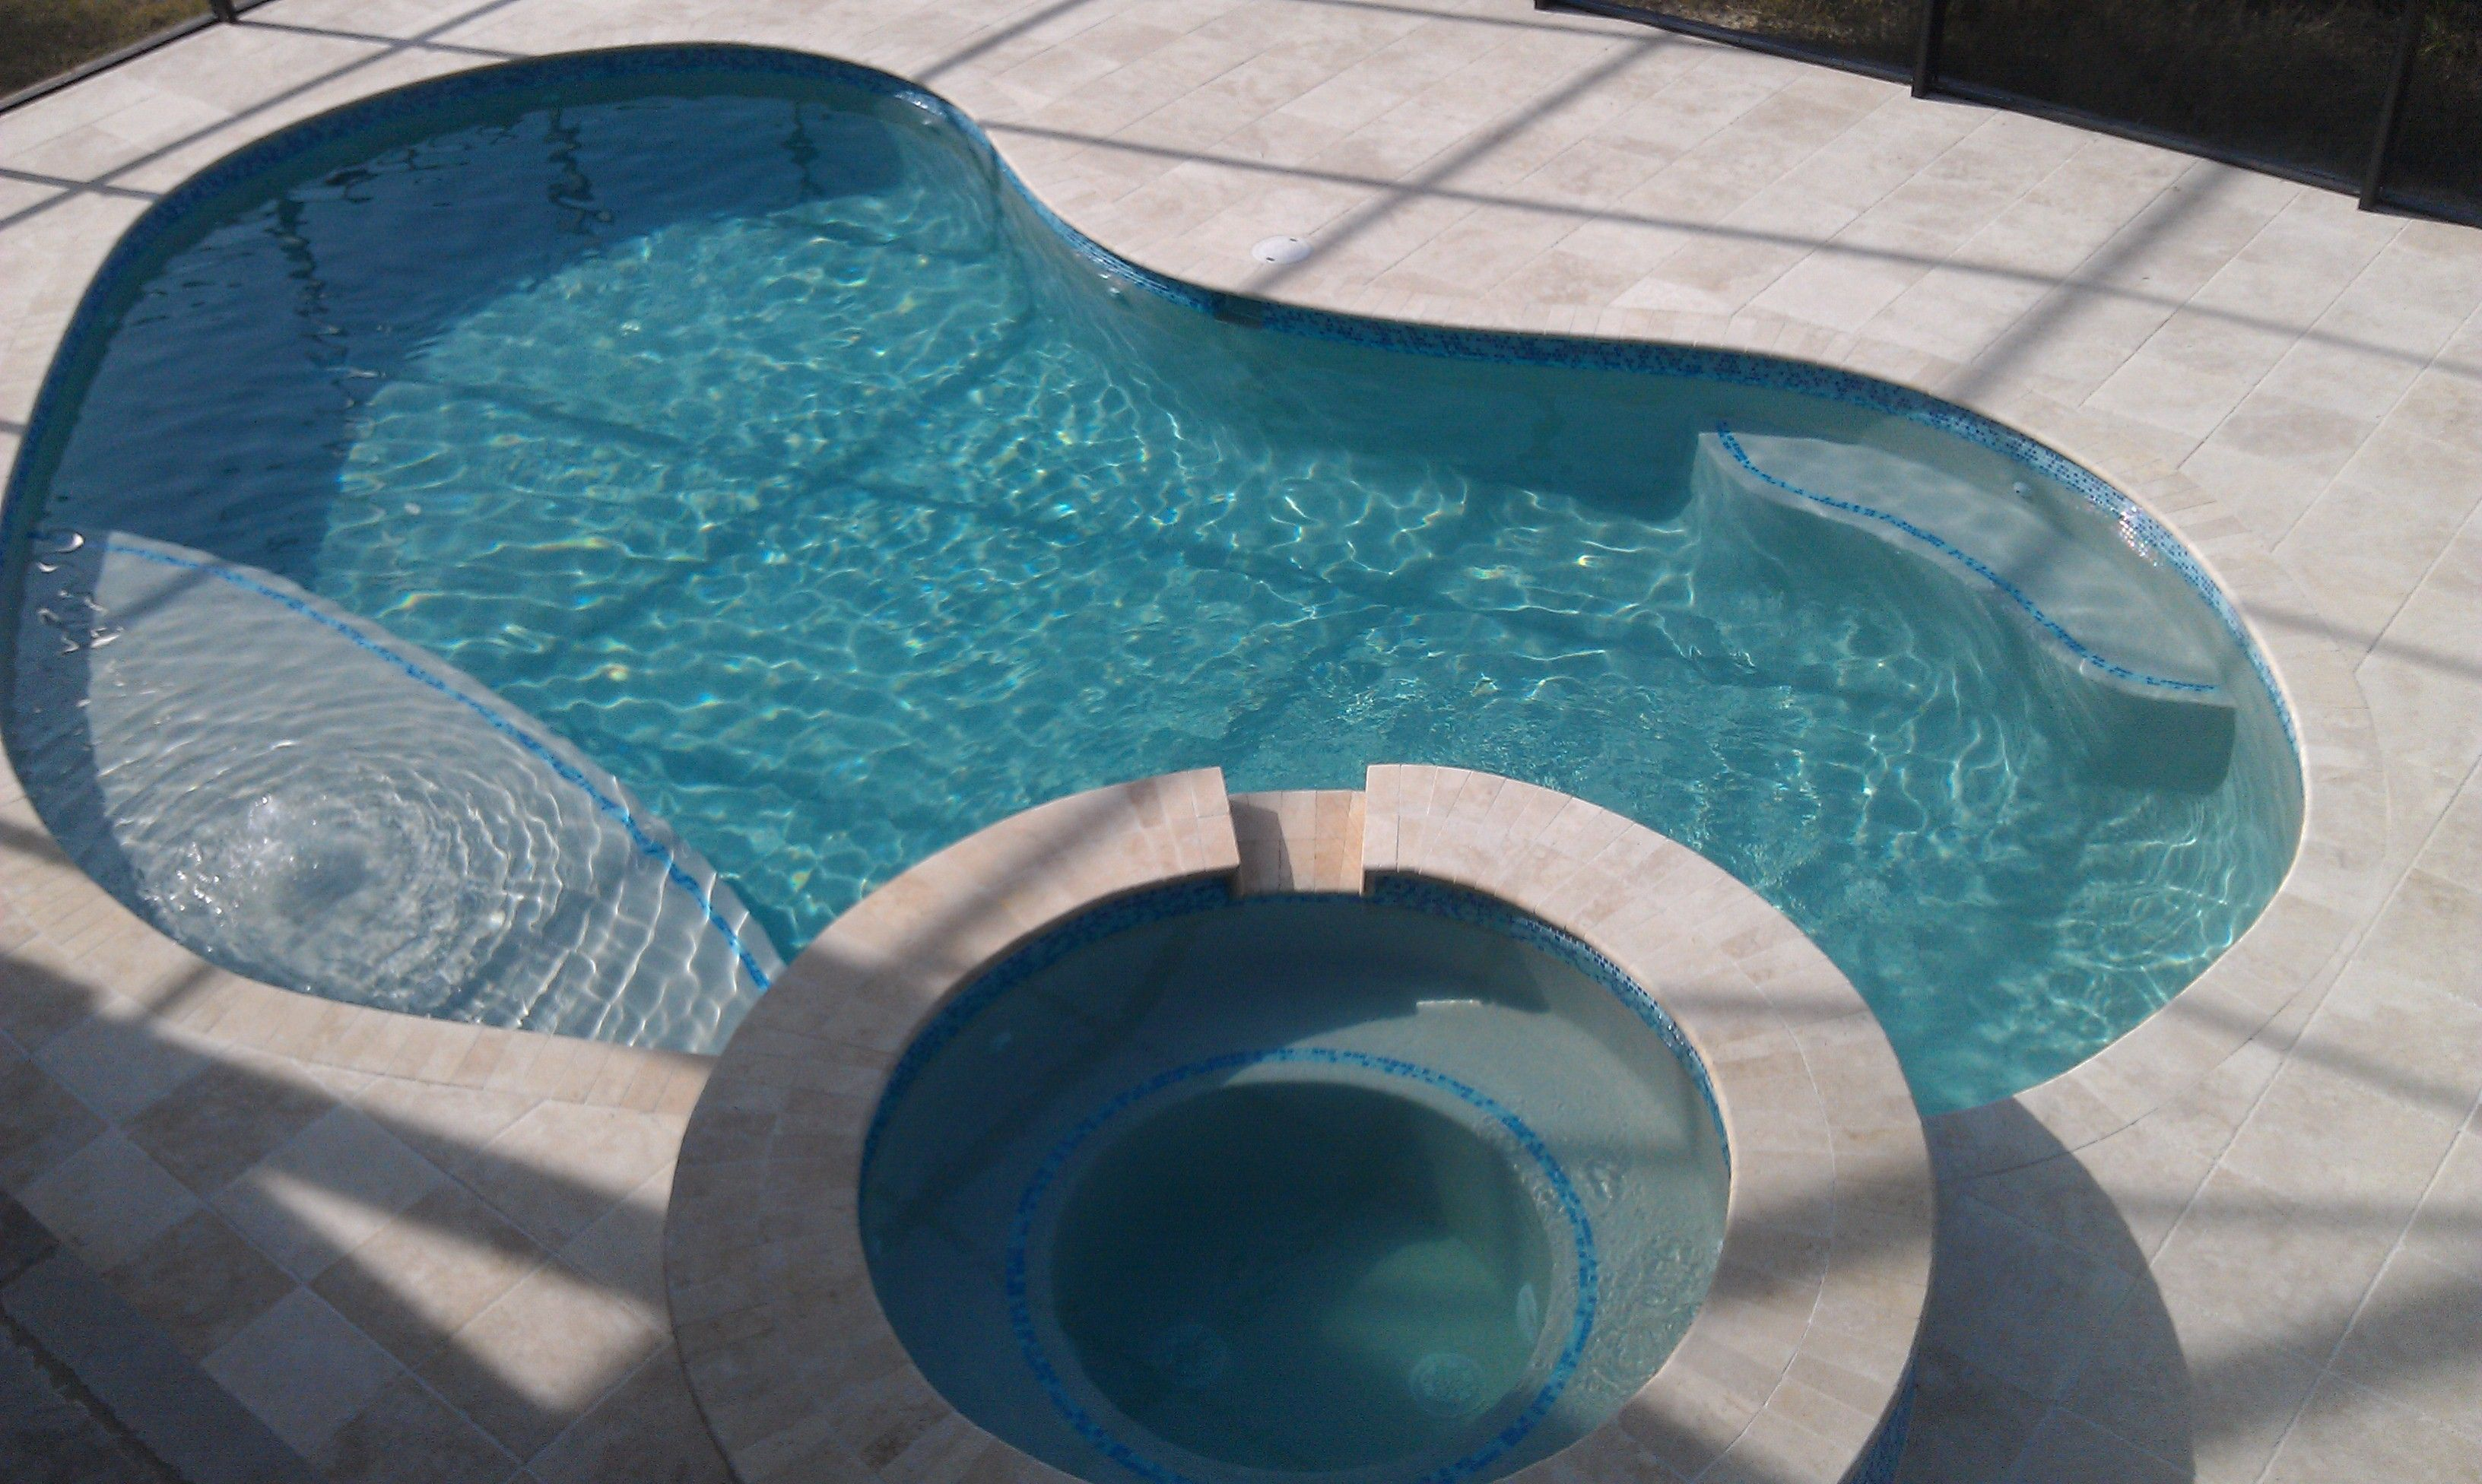 Tile Over Concrete Pool Deck Raised Spillover Spa Travertine Deck Sun Ledge Glass Mosaic